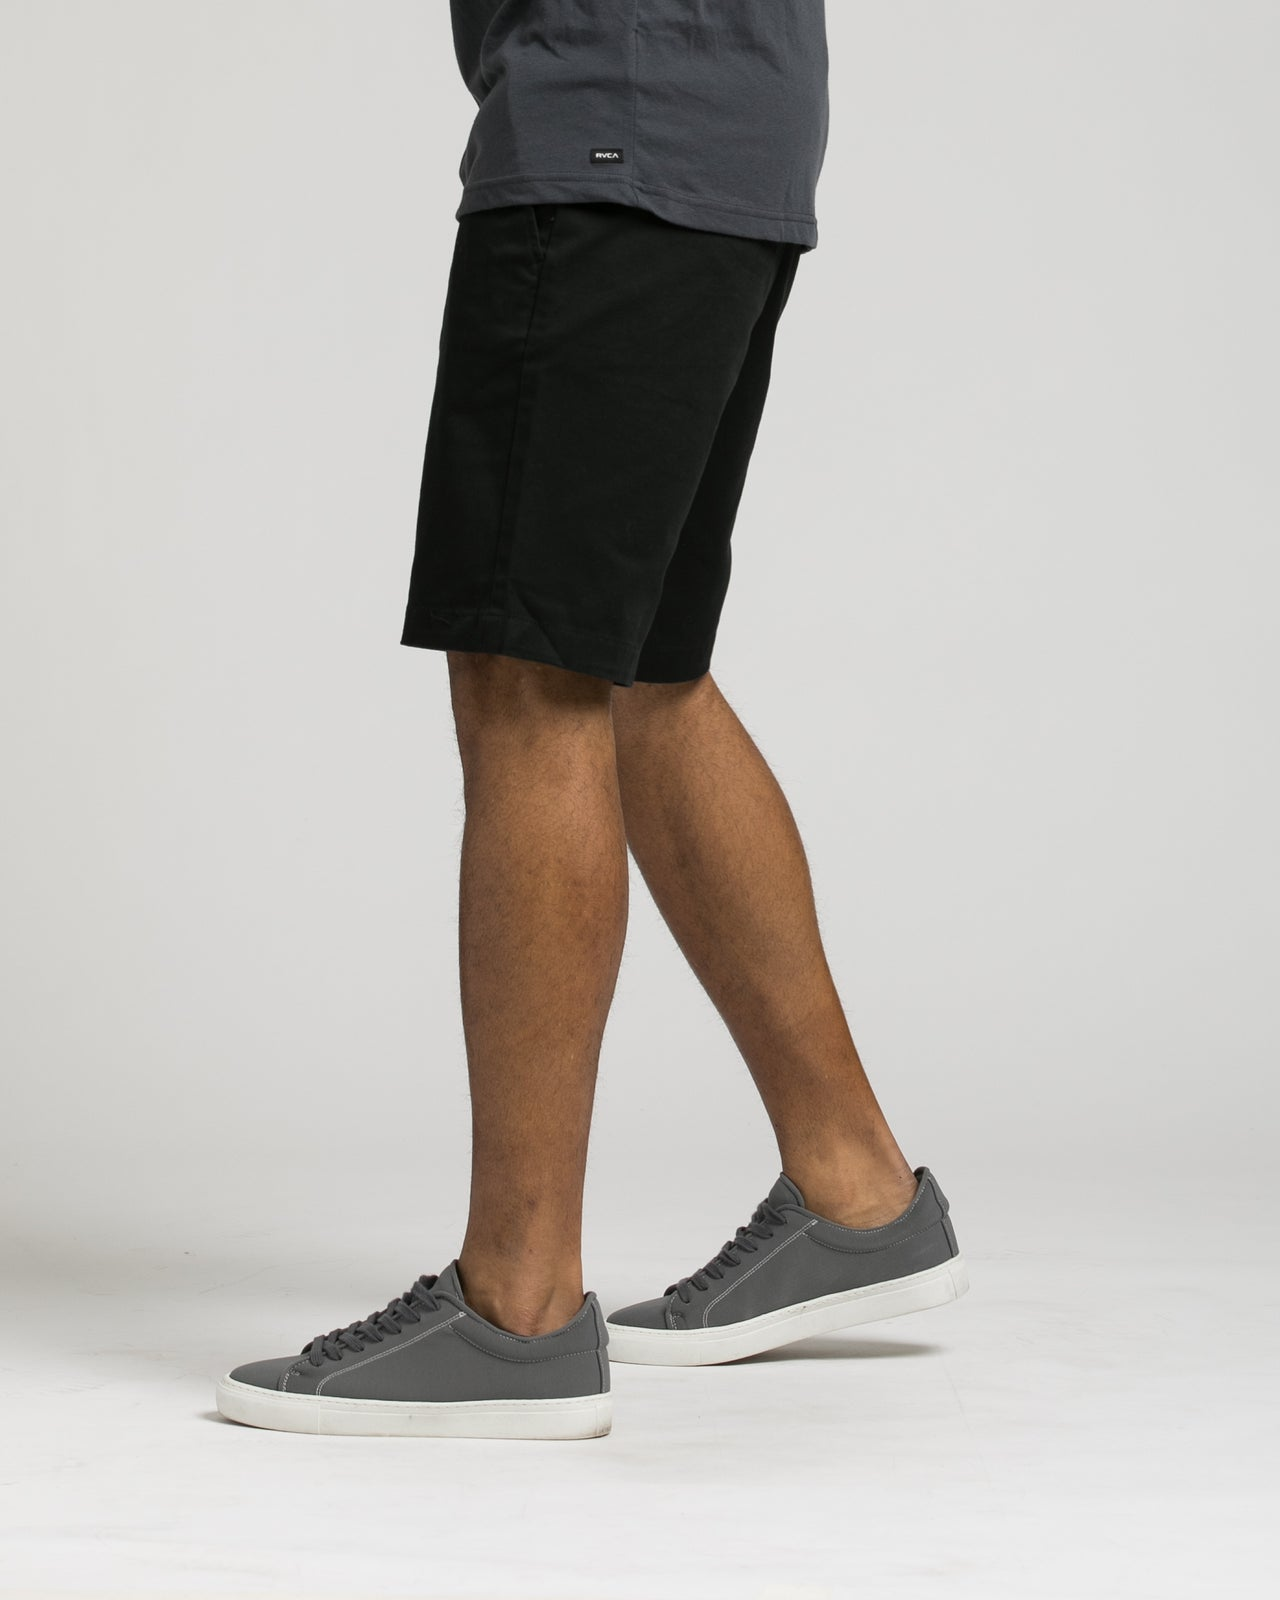 Weekend Stretch Short - Color: Black | Black